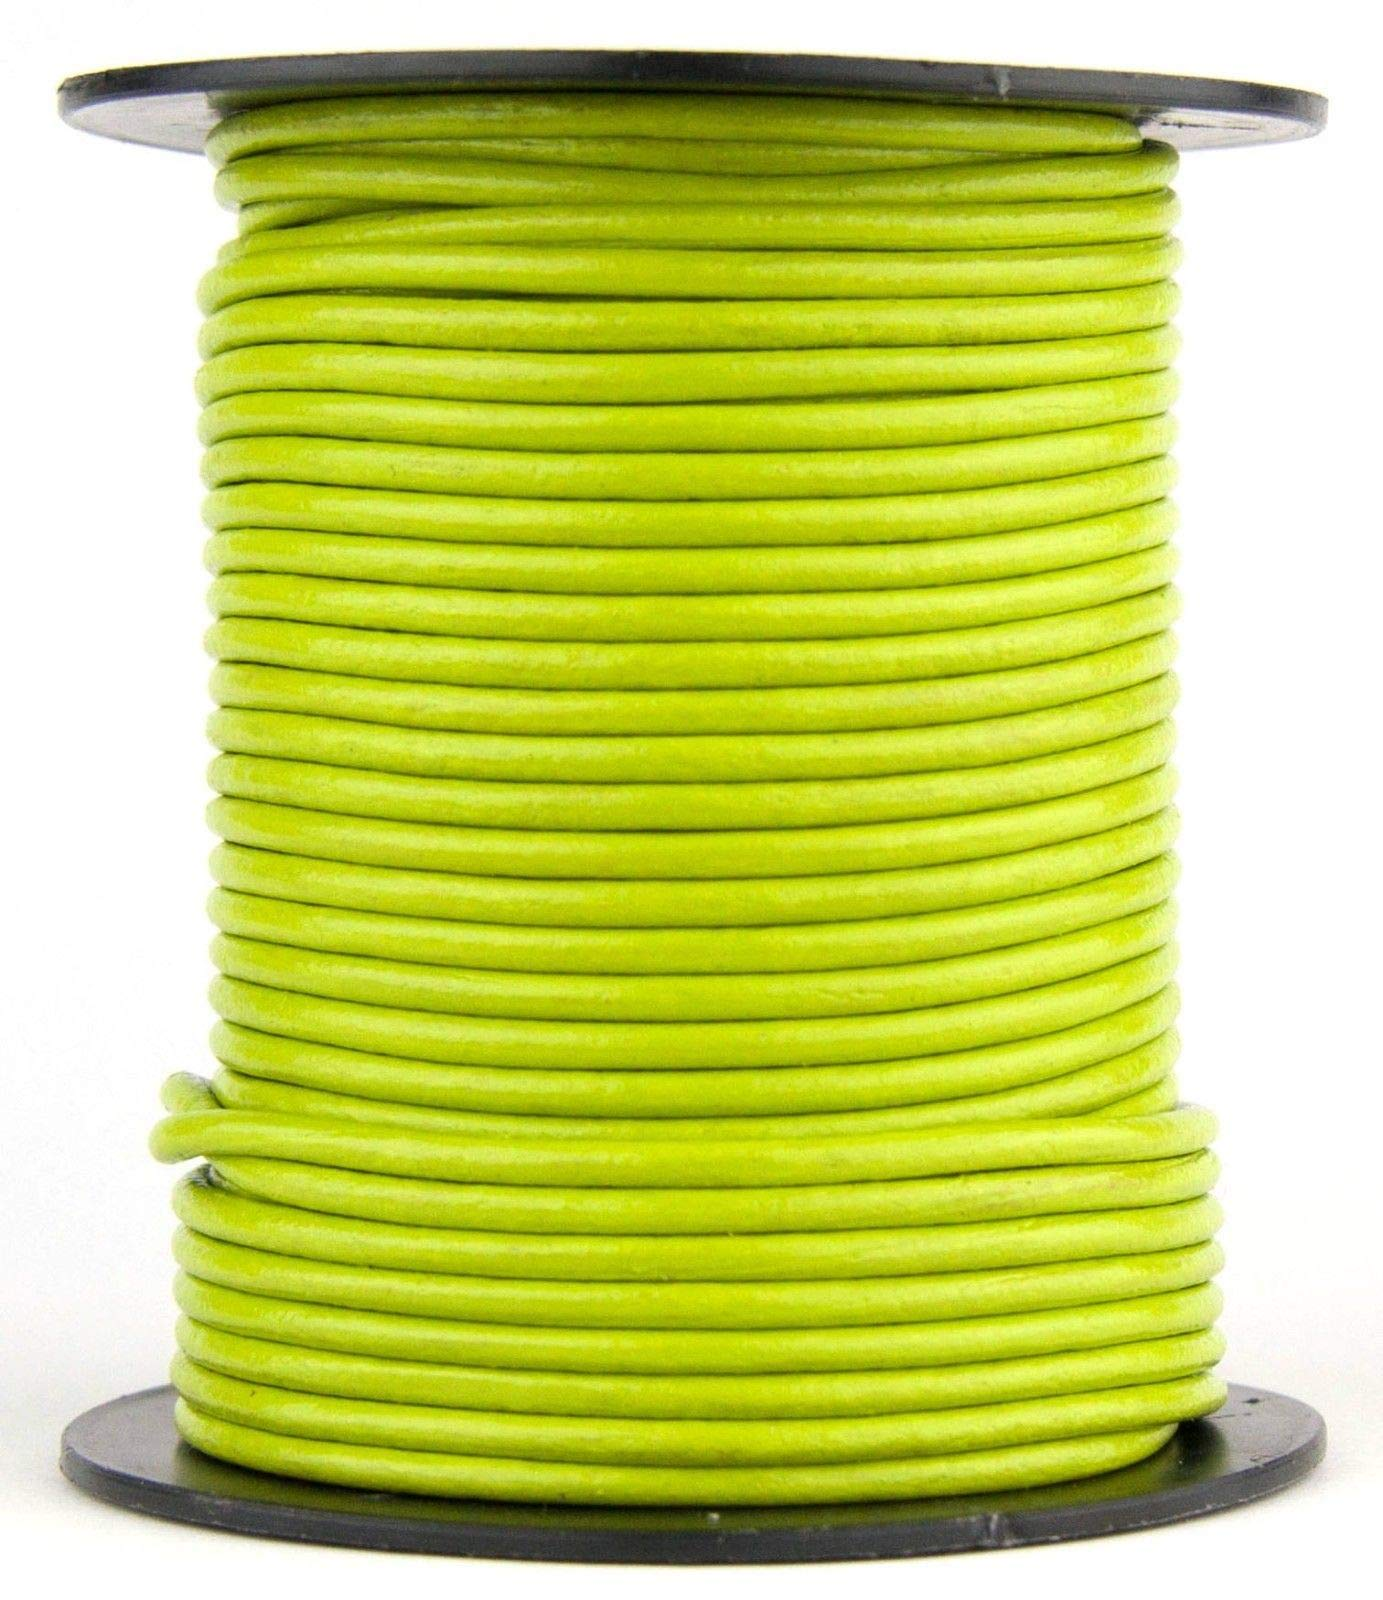 Light Green Round Leather Cord 1.5mm 100 Meters (109 Yards) by RERA SHOP (Image #1)